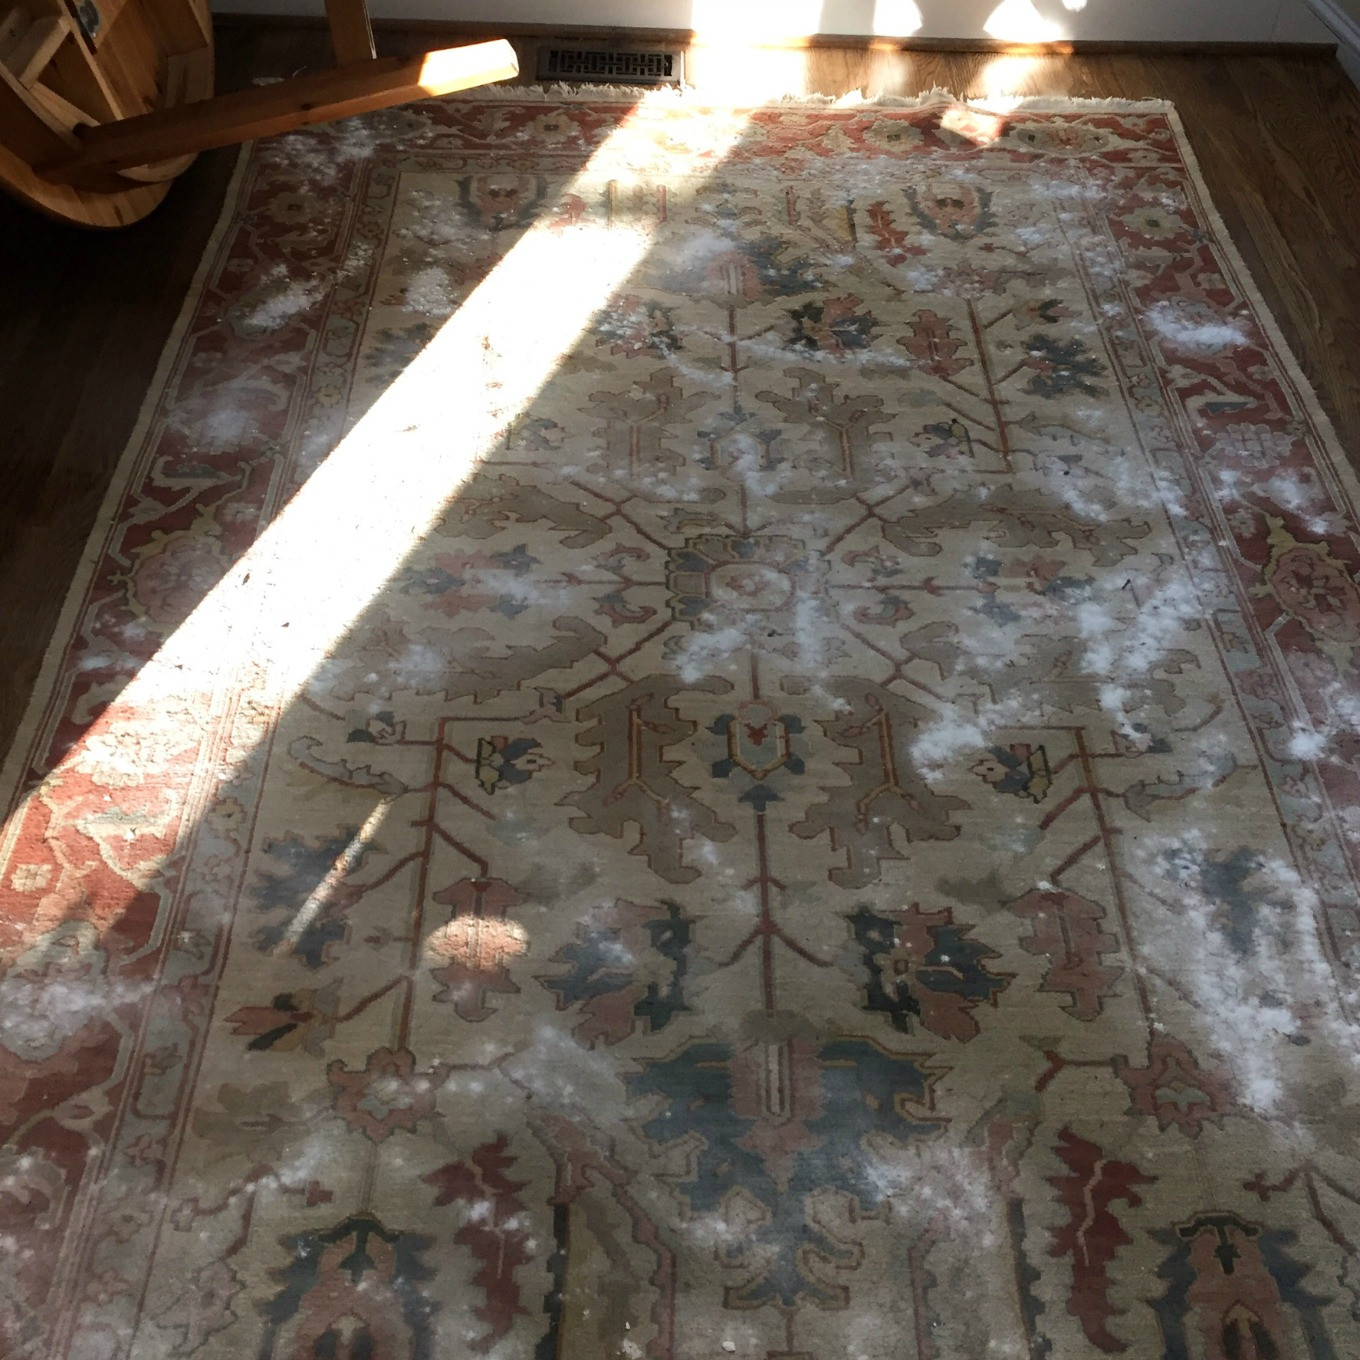 How to clean and deodorize a rug - thediybungalow.com